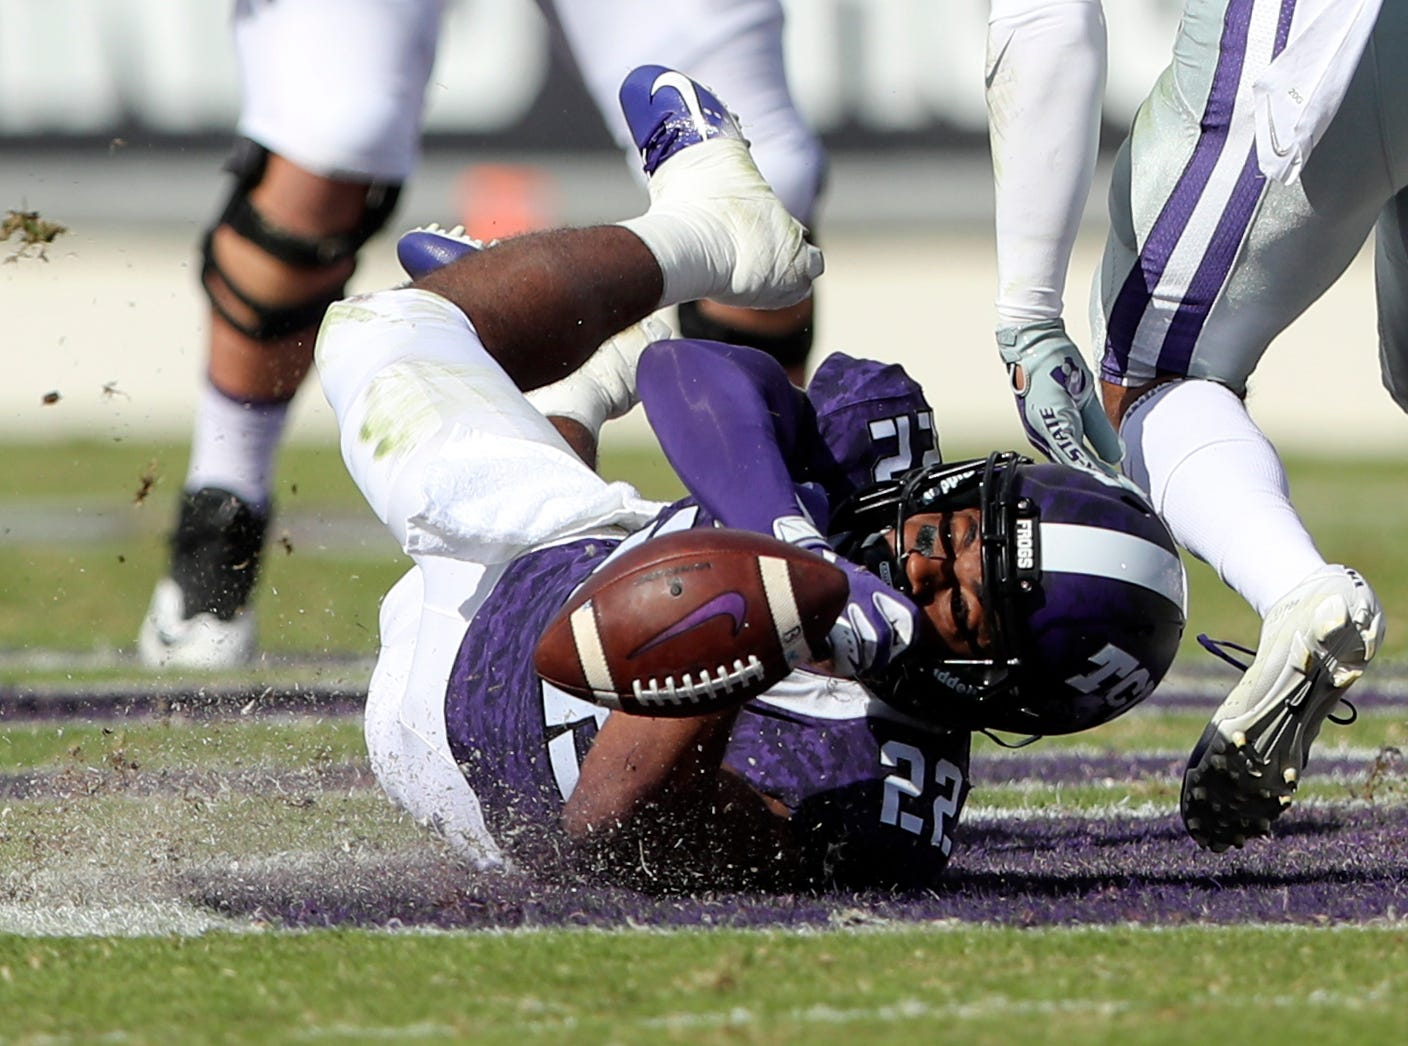 TCU Horned Frogs wide receiver Jarrison Stewart (22) dives but cannot make a catch during the first half against the Kansas State Wildcats at Amon G. Carter Stadium.